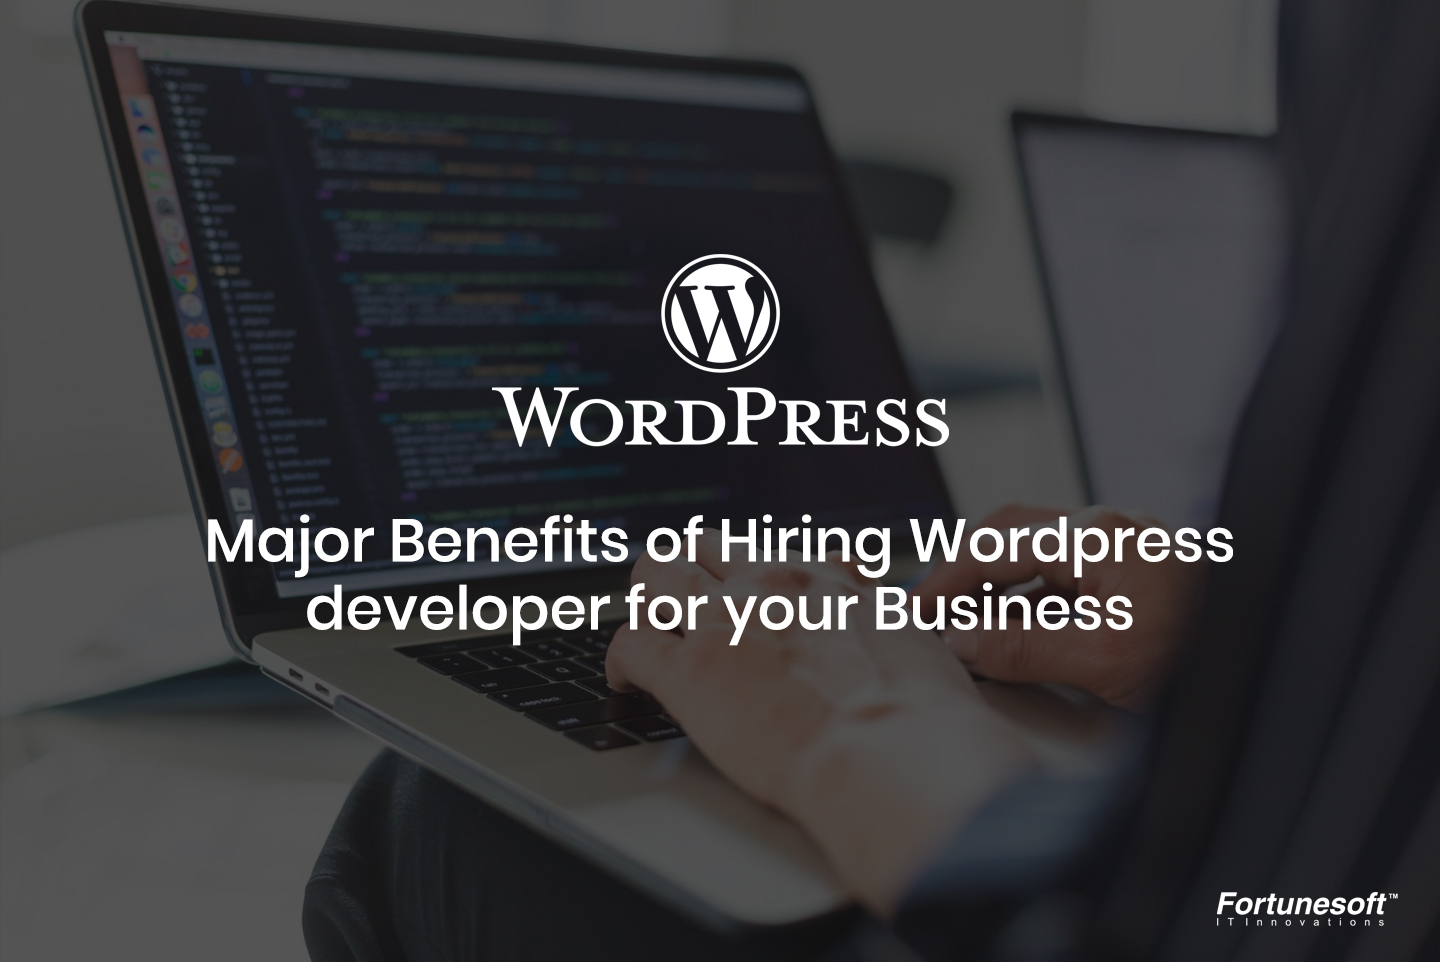 Top reasons to hire Wordpress developers for your Business